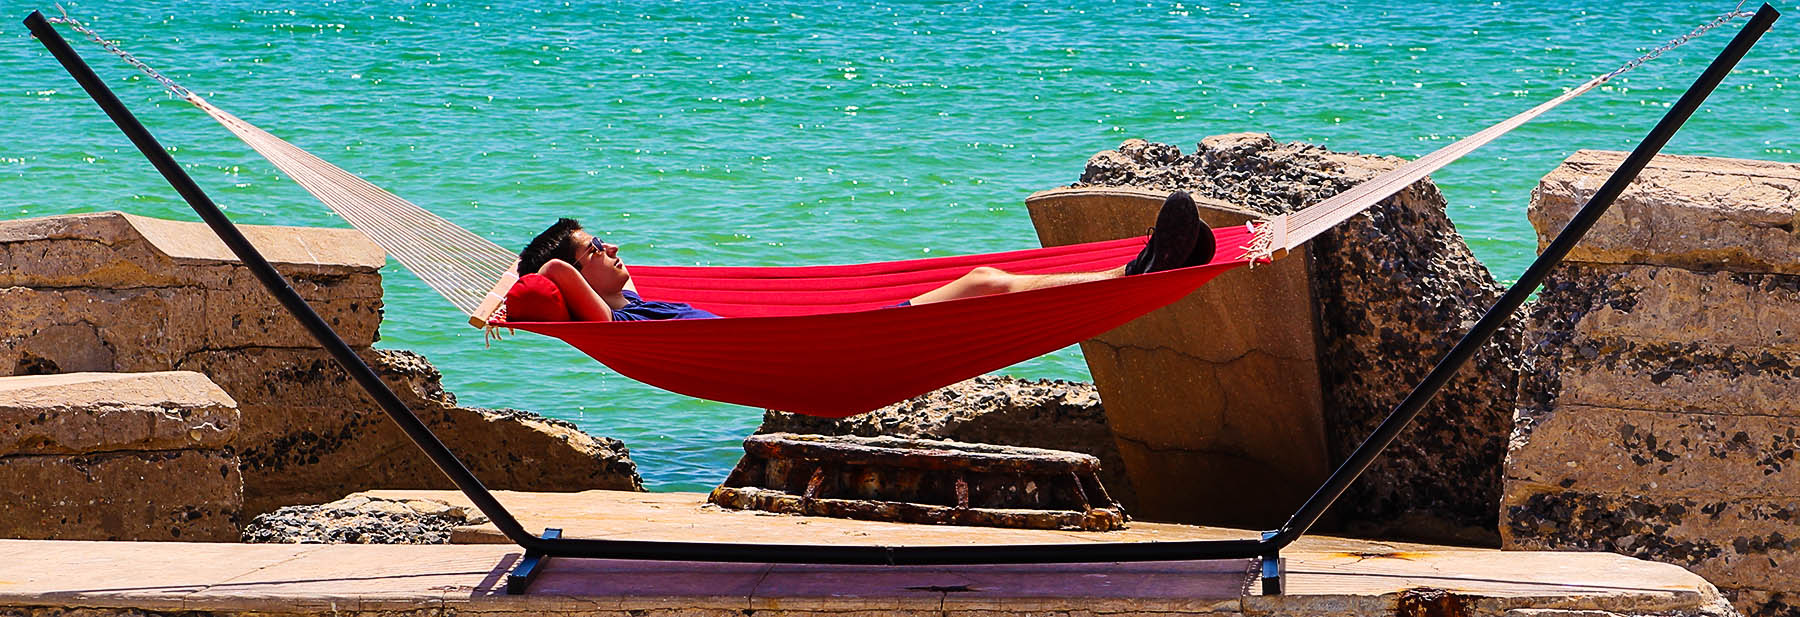 young man resting in a red hammock and stand by the ocean